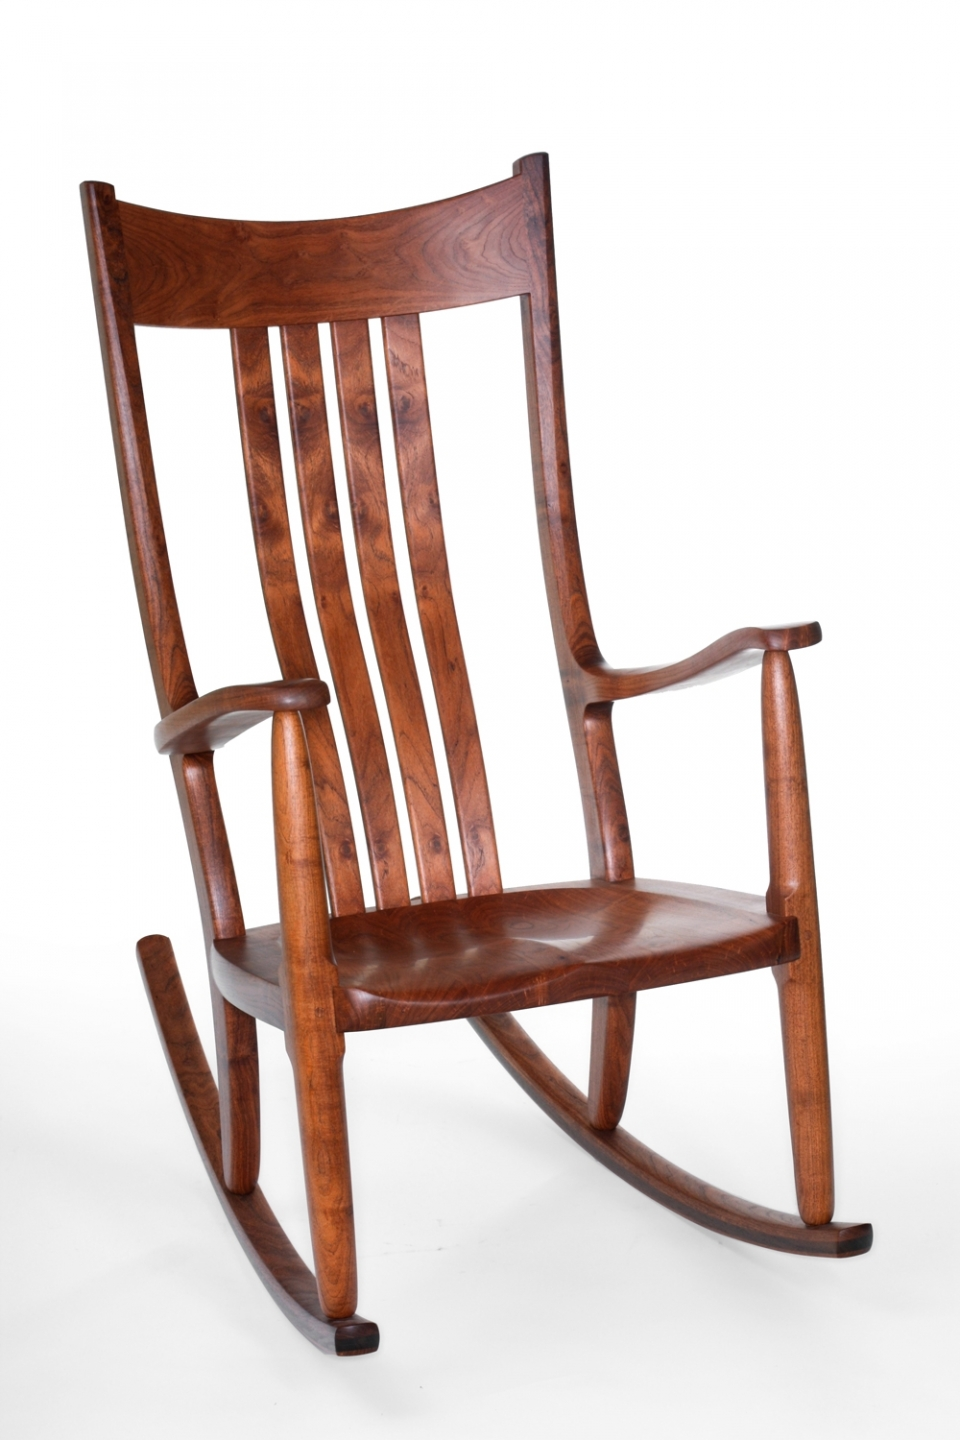 mesquite rocker front eighth view